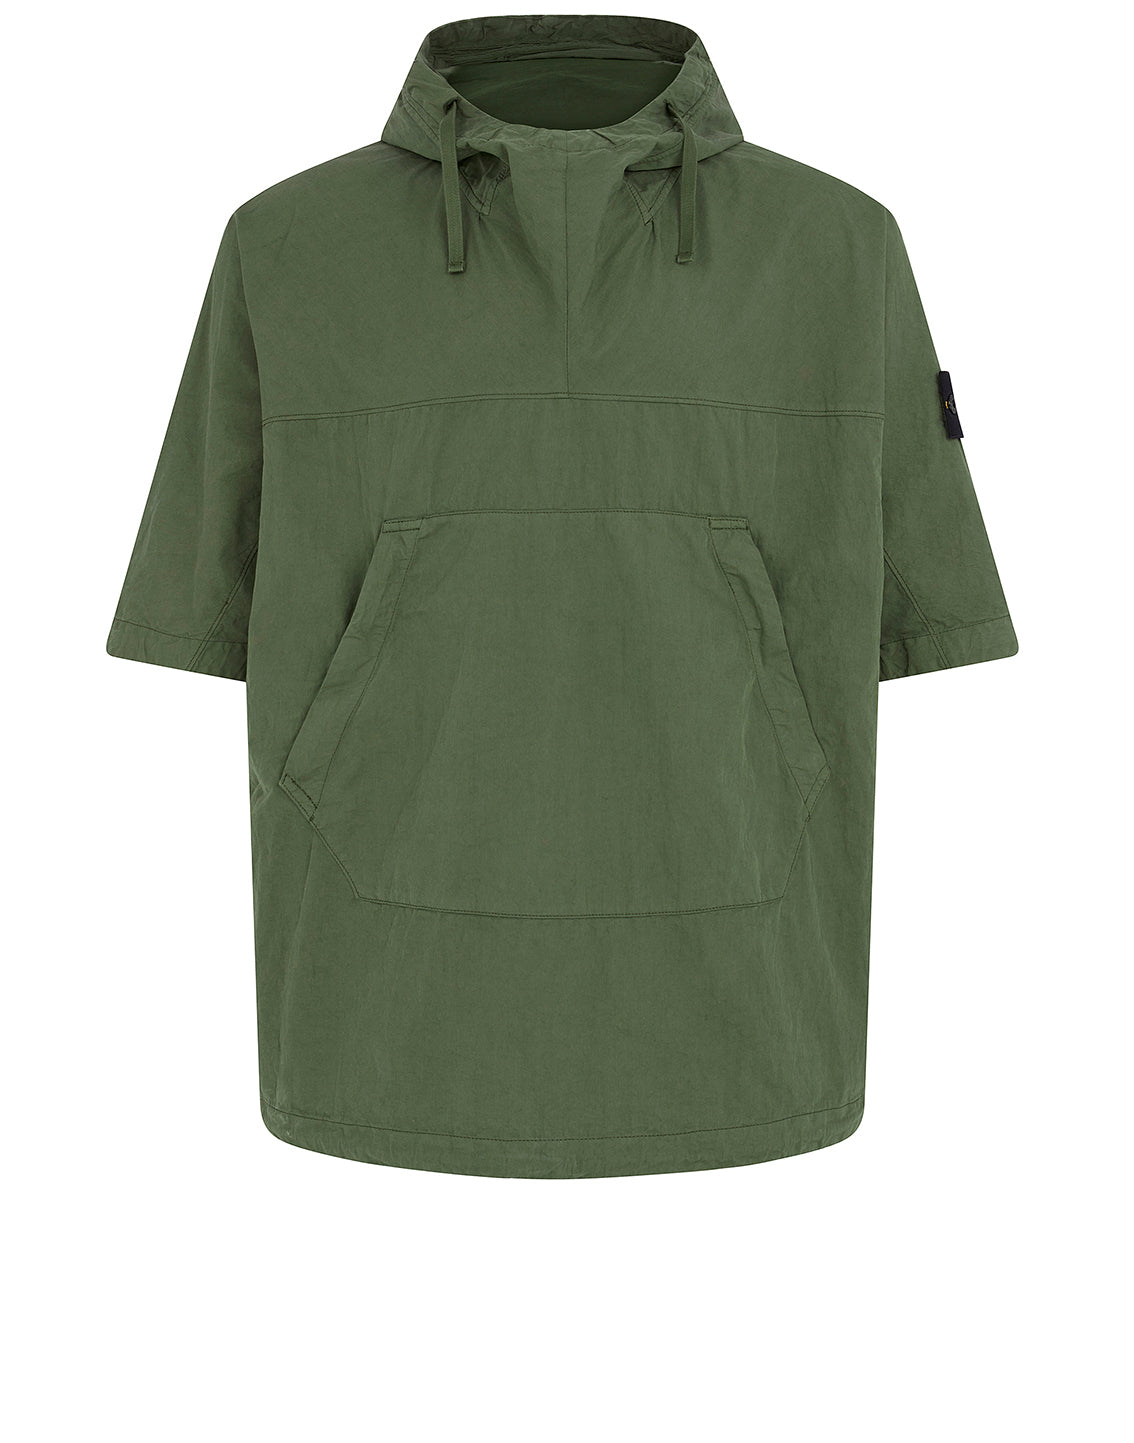 12208 Hooded Overshirt in Olive